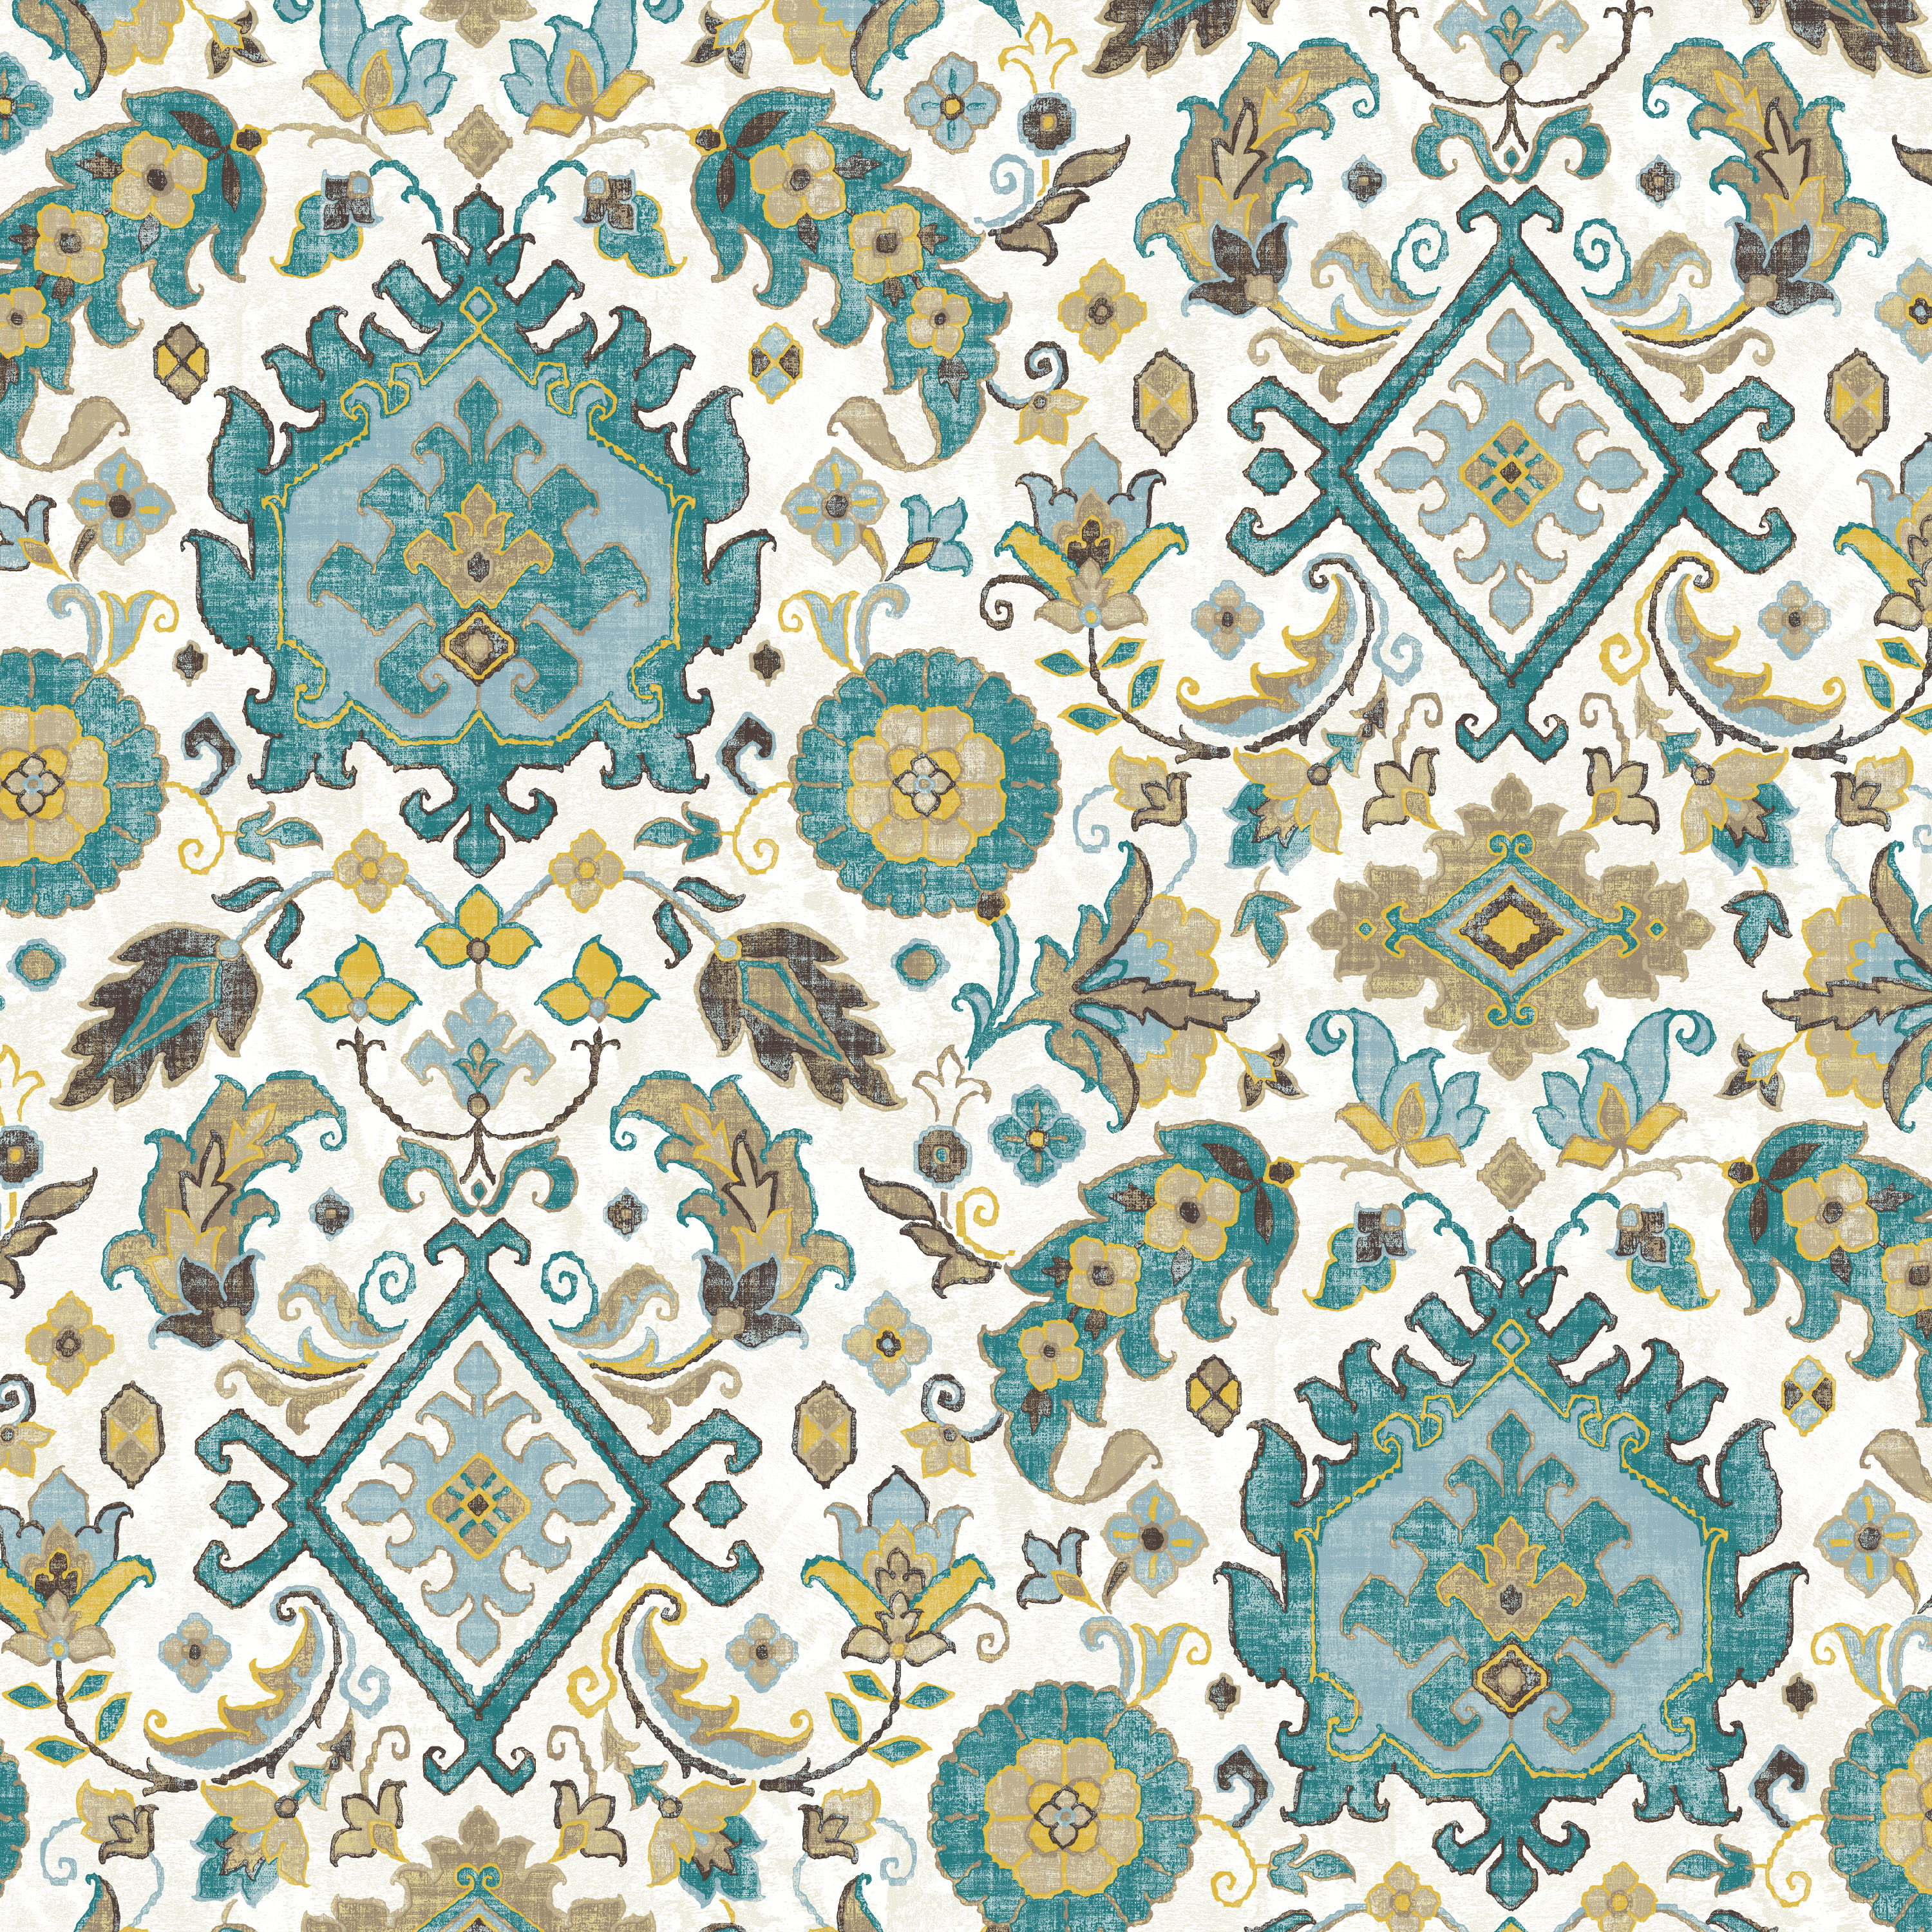 Waverly Inspirations Dhurrie Teal 100% Cotton Duck Fabric Quilt Crafts, per Yard